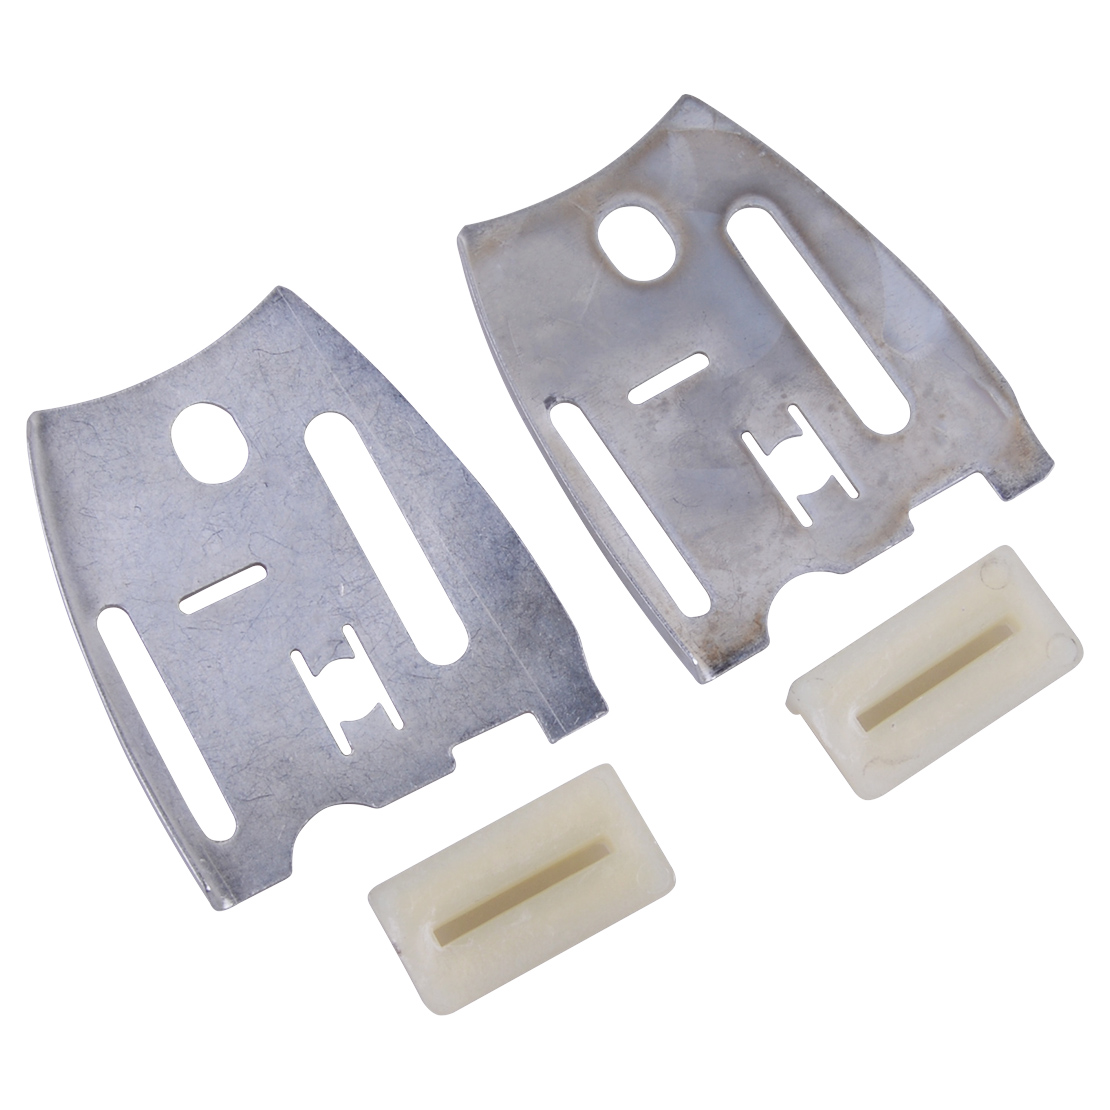 LETAOSK New Guide Bar Plate & Bumper Strip Kit Fit For HUSQVARNA 61 66 181 266 268 272 281 288 XP Chainsaw Parts